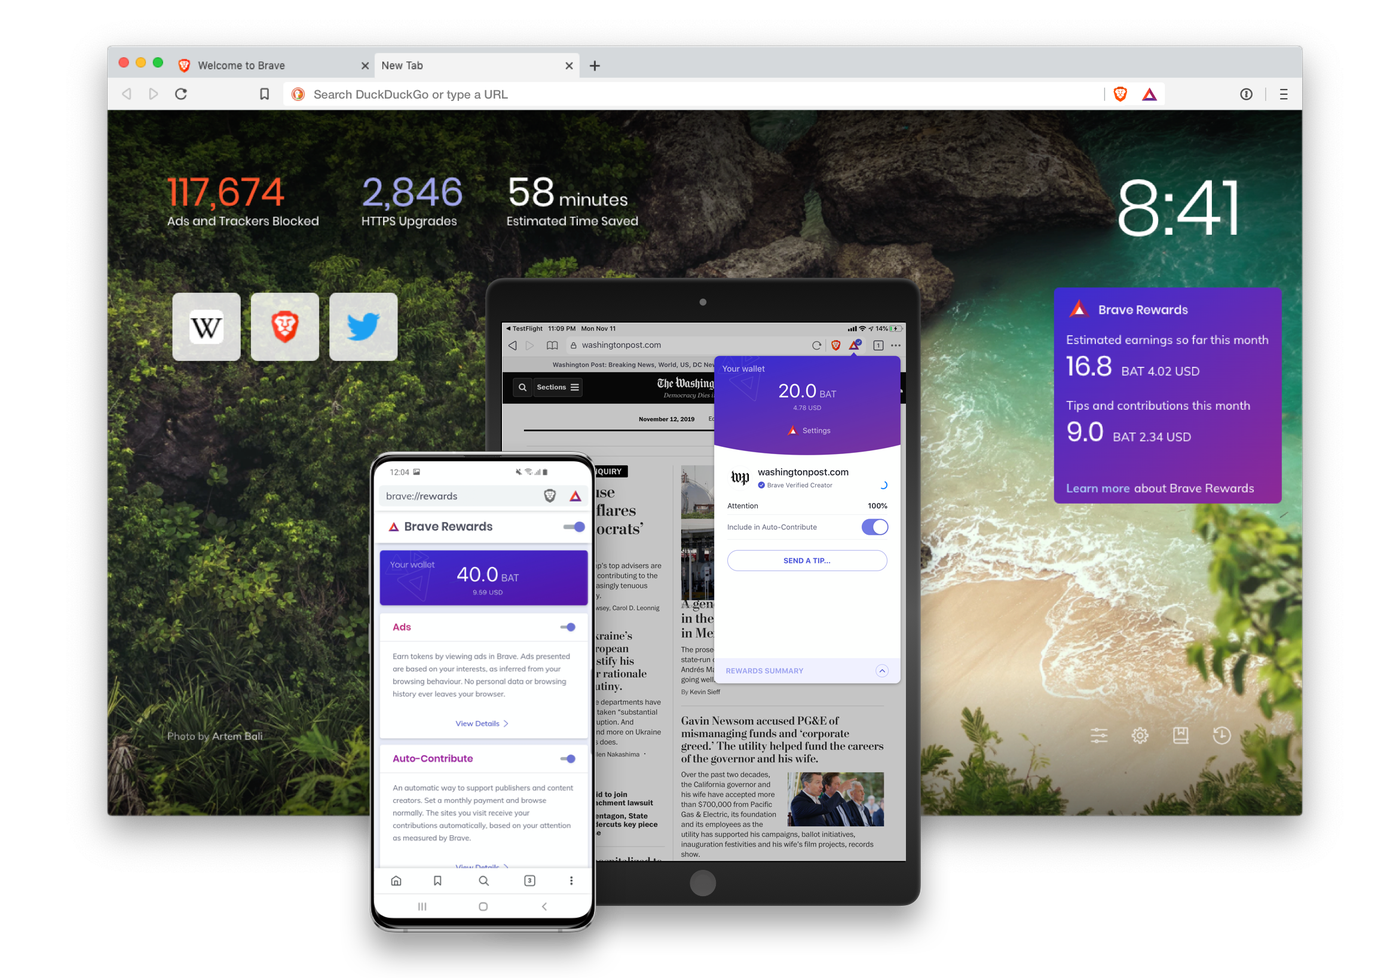 Brave is launching its own search engine with the help of ex-Cliqz devs and tech